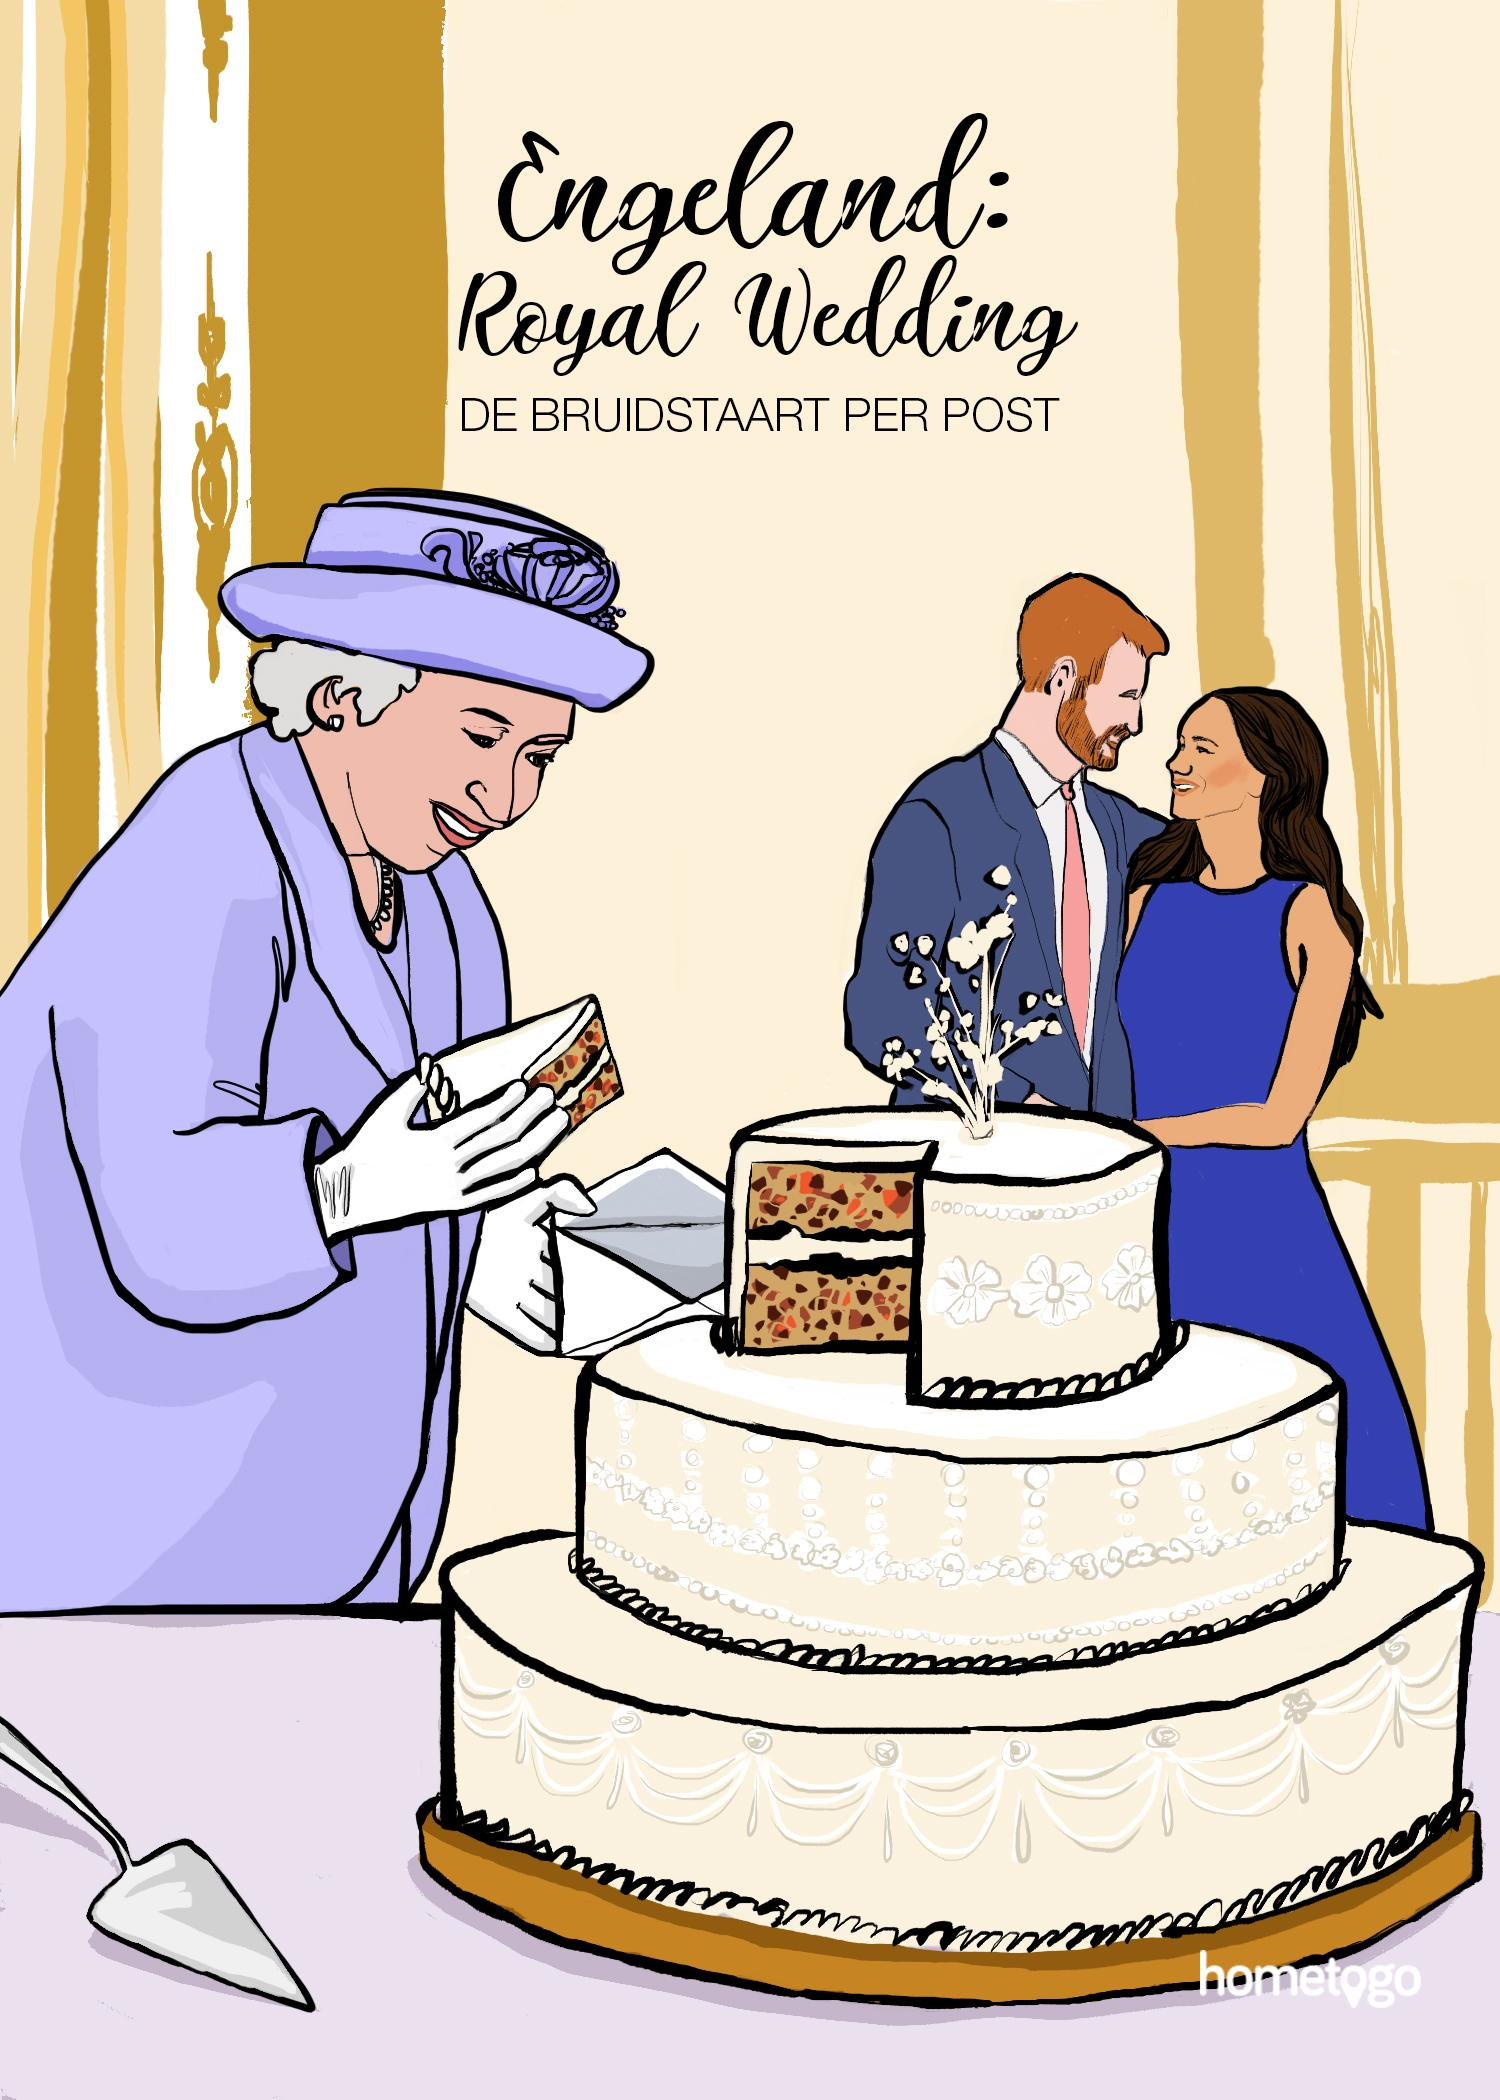 Illustration featuring the wedding custom from the royal wedding, where attendees are mailed a piece of cake after the celebration